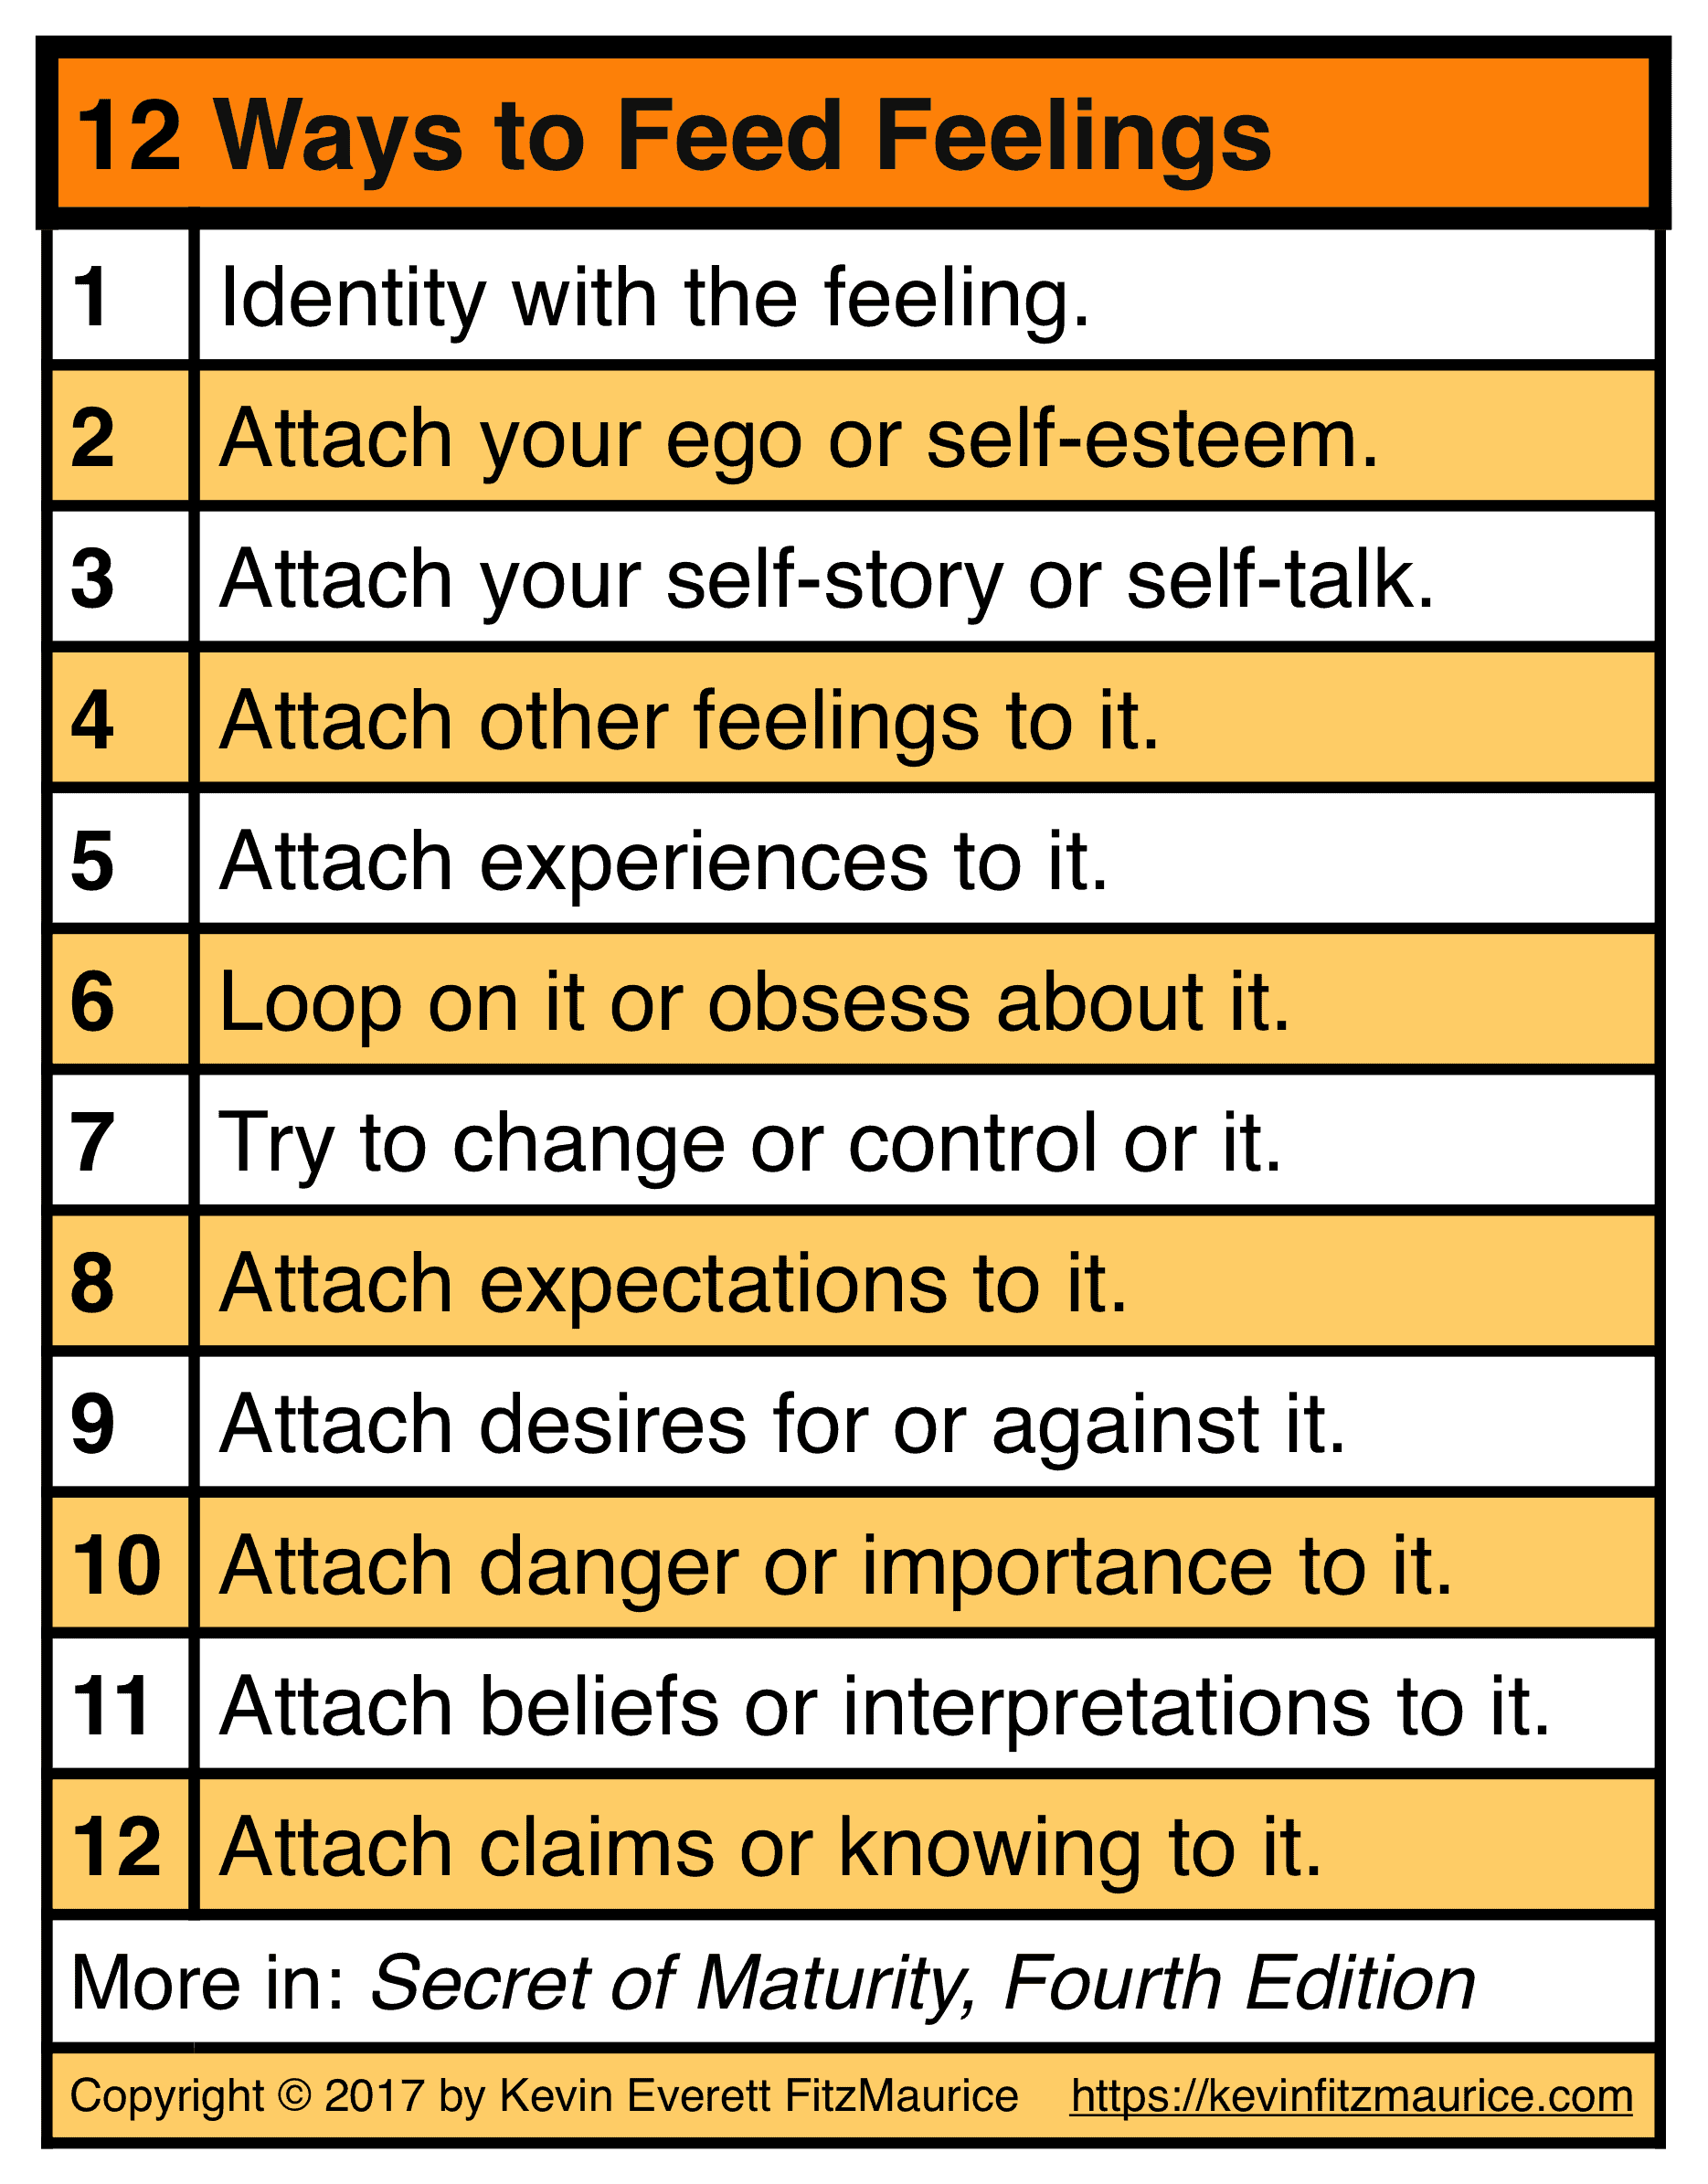 12 Ways to Feed Feelings